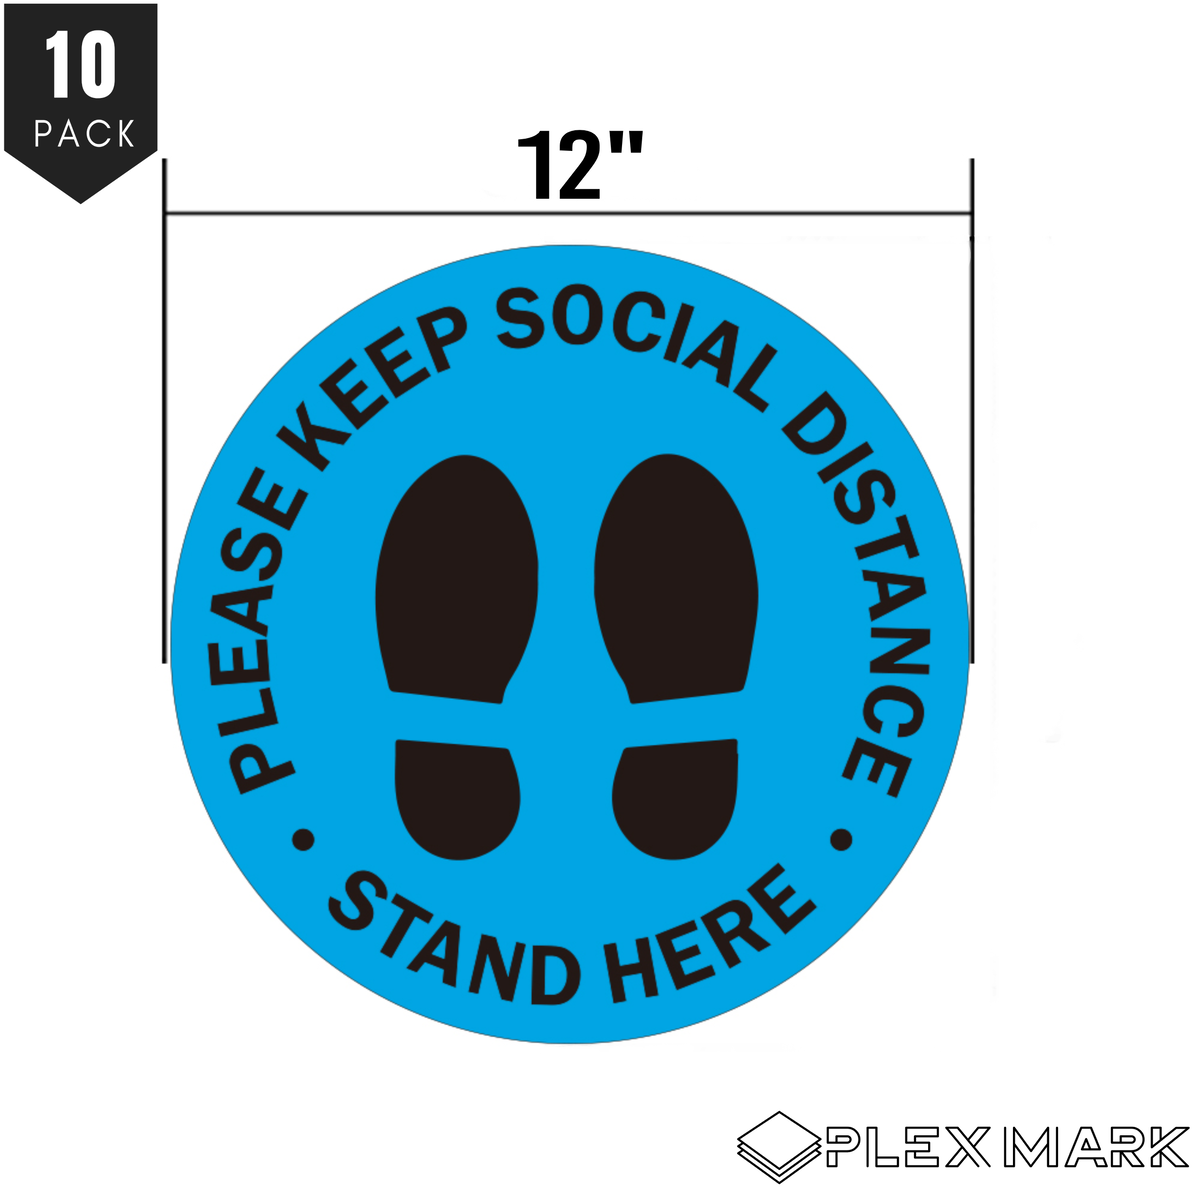 PlexMark - Social Distancing Floor Decals 12 inches Bulk 10-Pack and Scraper Tool Round Markers Waterproof Tear Proof Safety Signs Perfect for Businesses Easy Peel Off Crowd Control 6 ft Apart (BLUE COLOR ONLY)